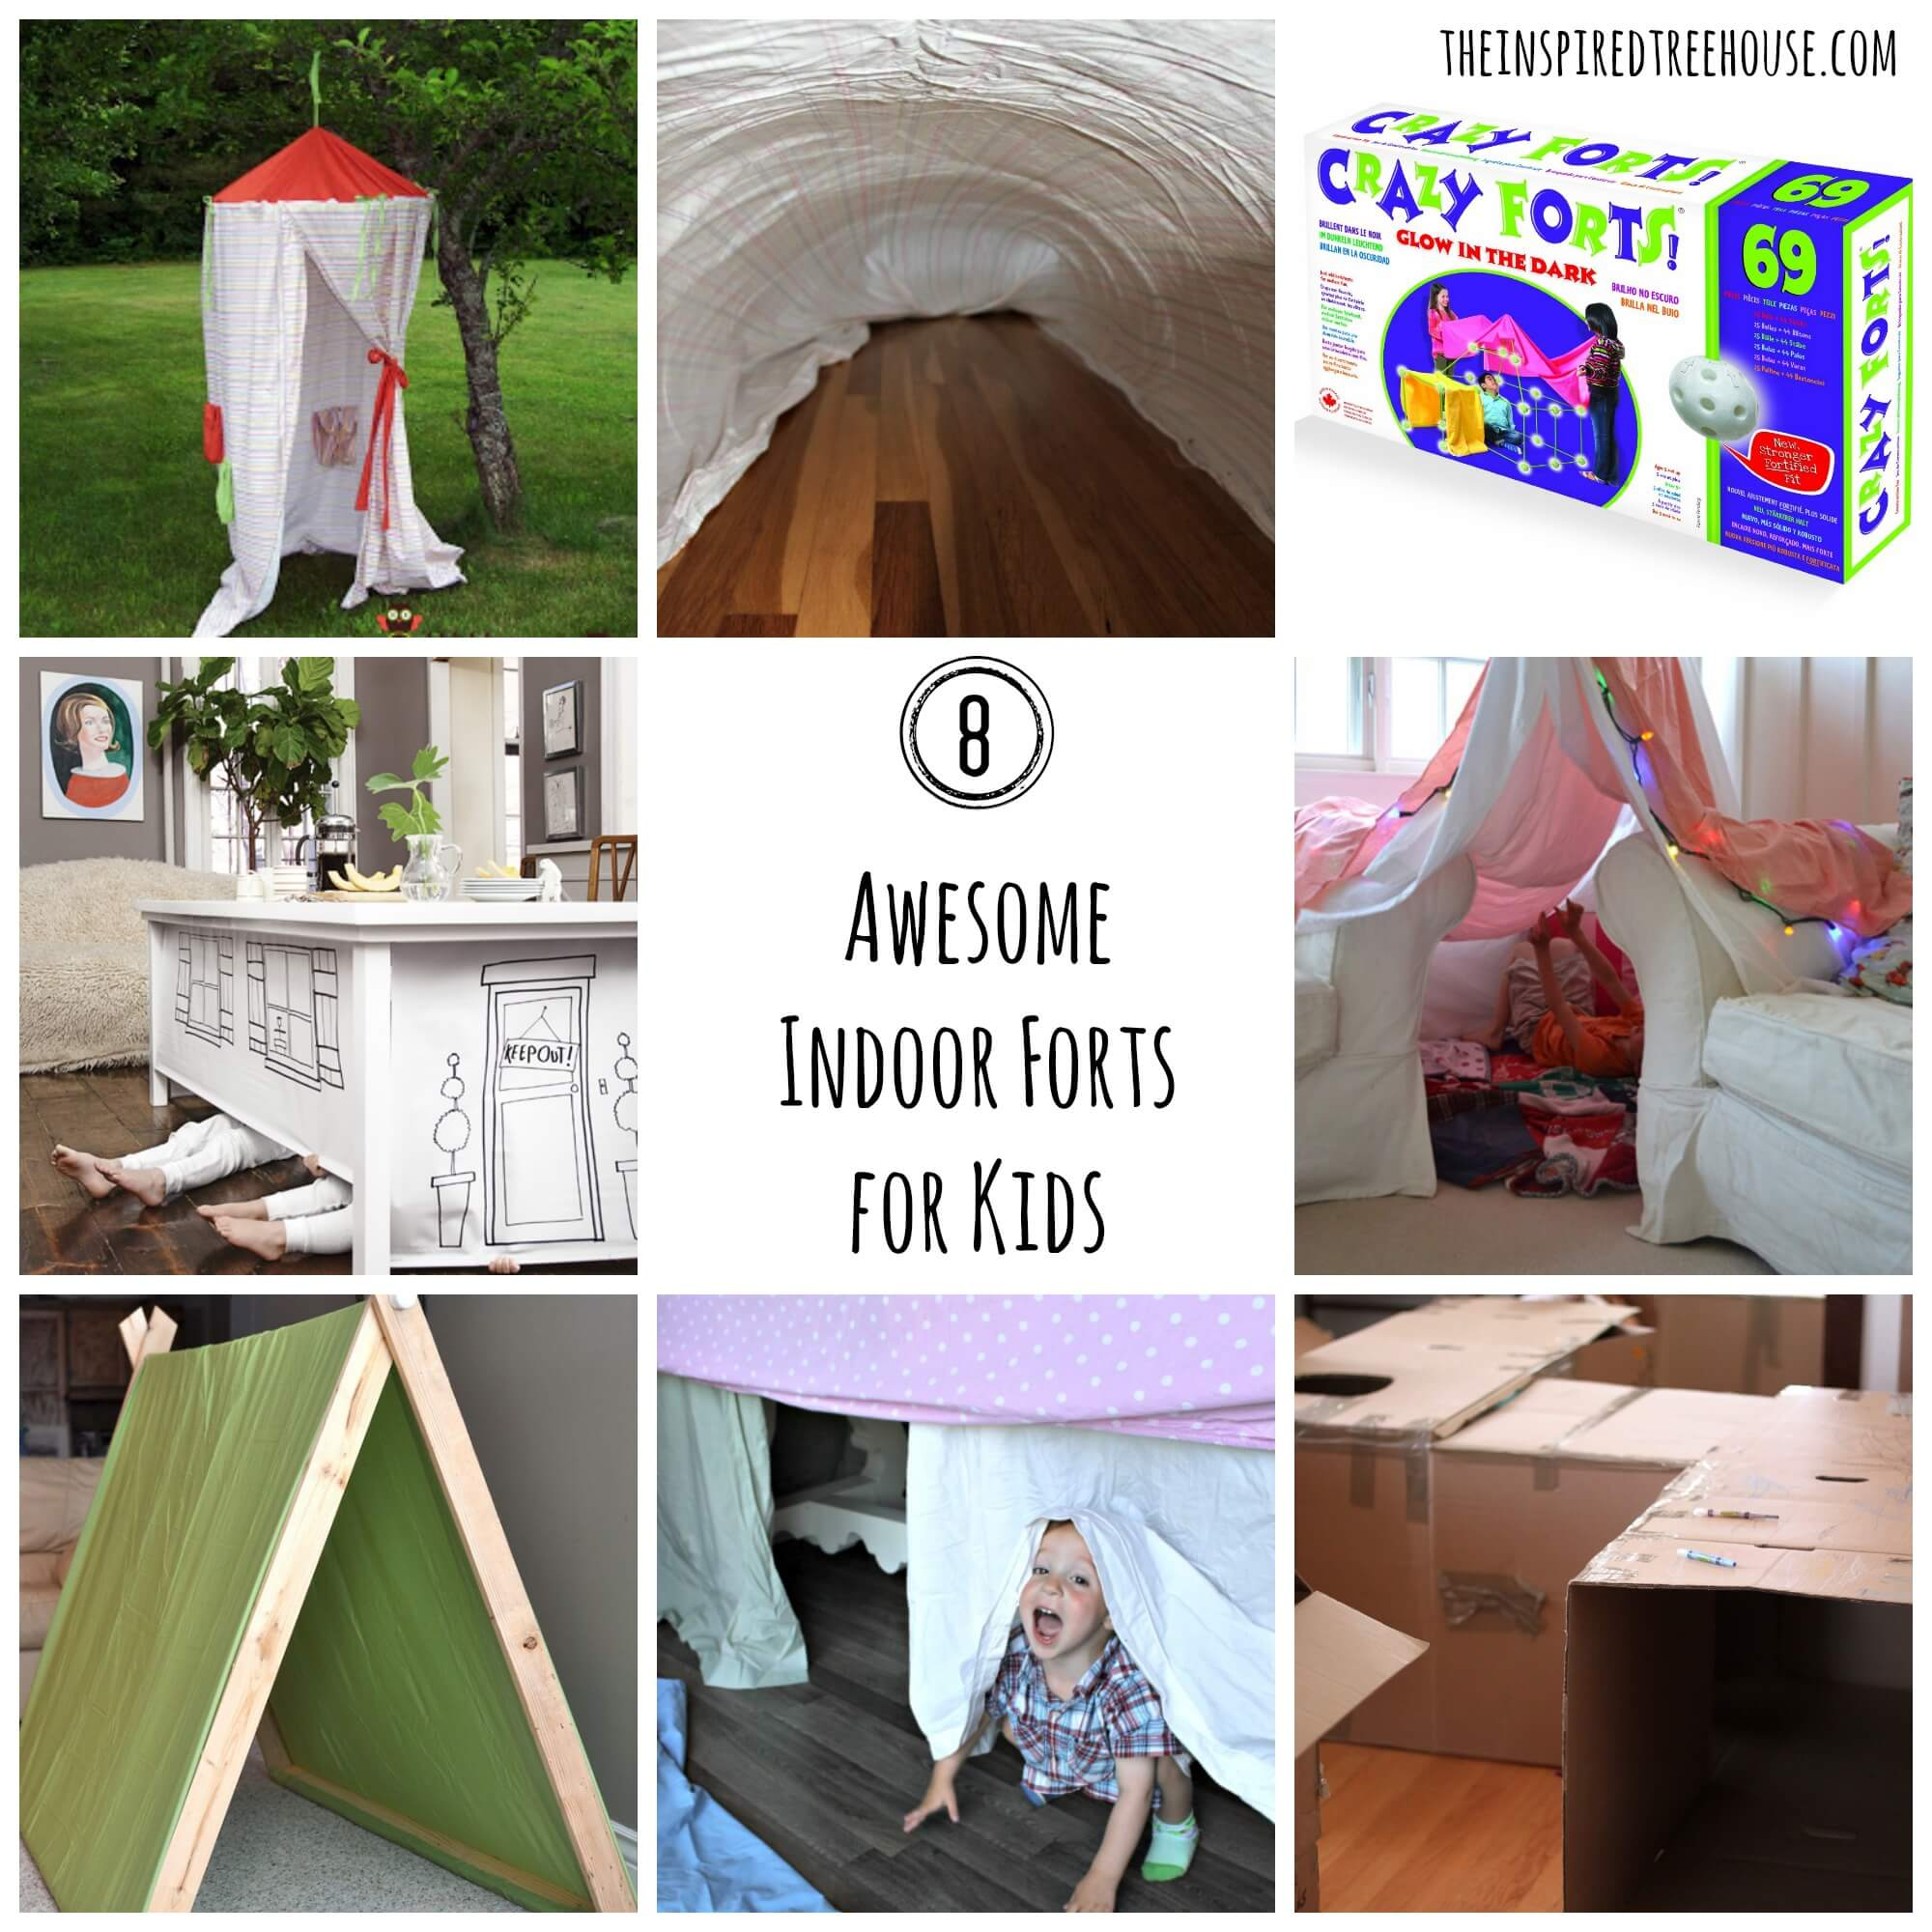 ACTIVITIES FOR KIDS AWESOME INDOOR FORT IDEAS The Inspired - Group guys build epic treehouse gaming